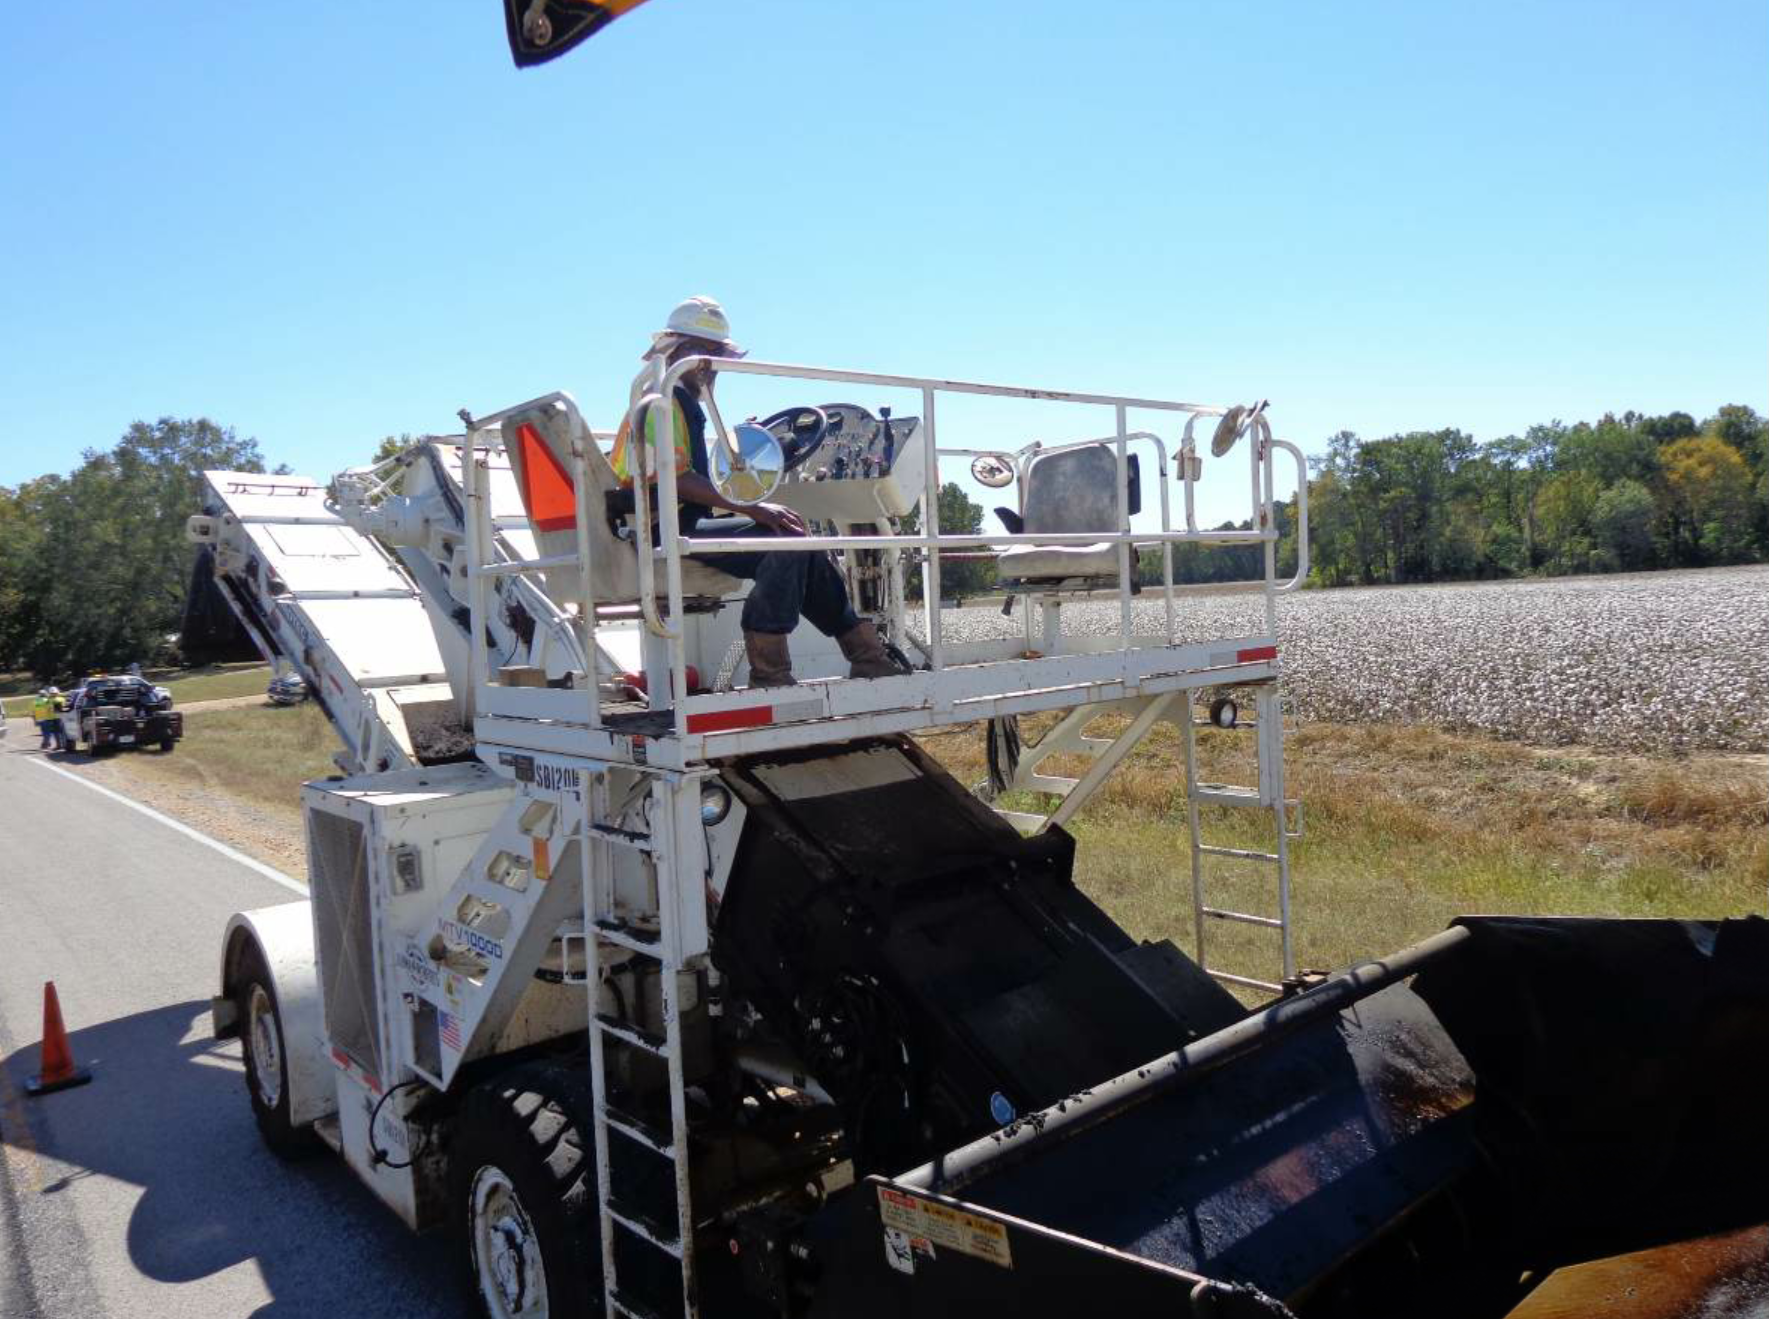 This material transfer vehicle operator has several convex mirrors positioned around his platform so he can see objects or persons in the blind spots around the machine.